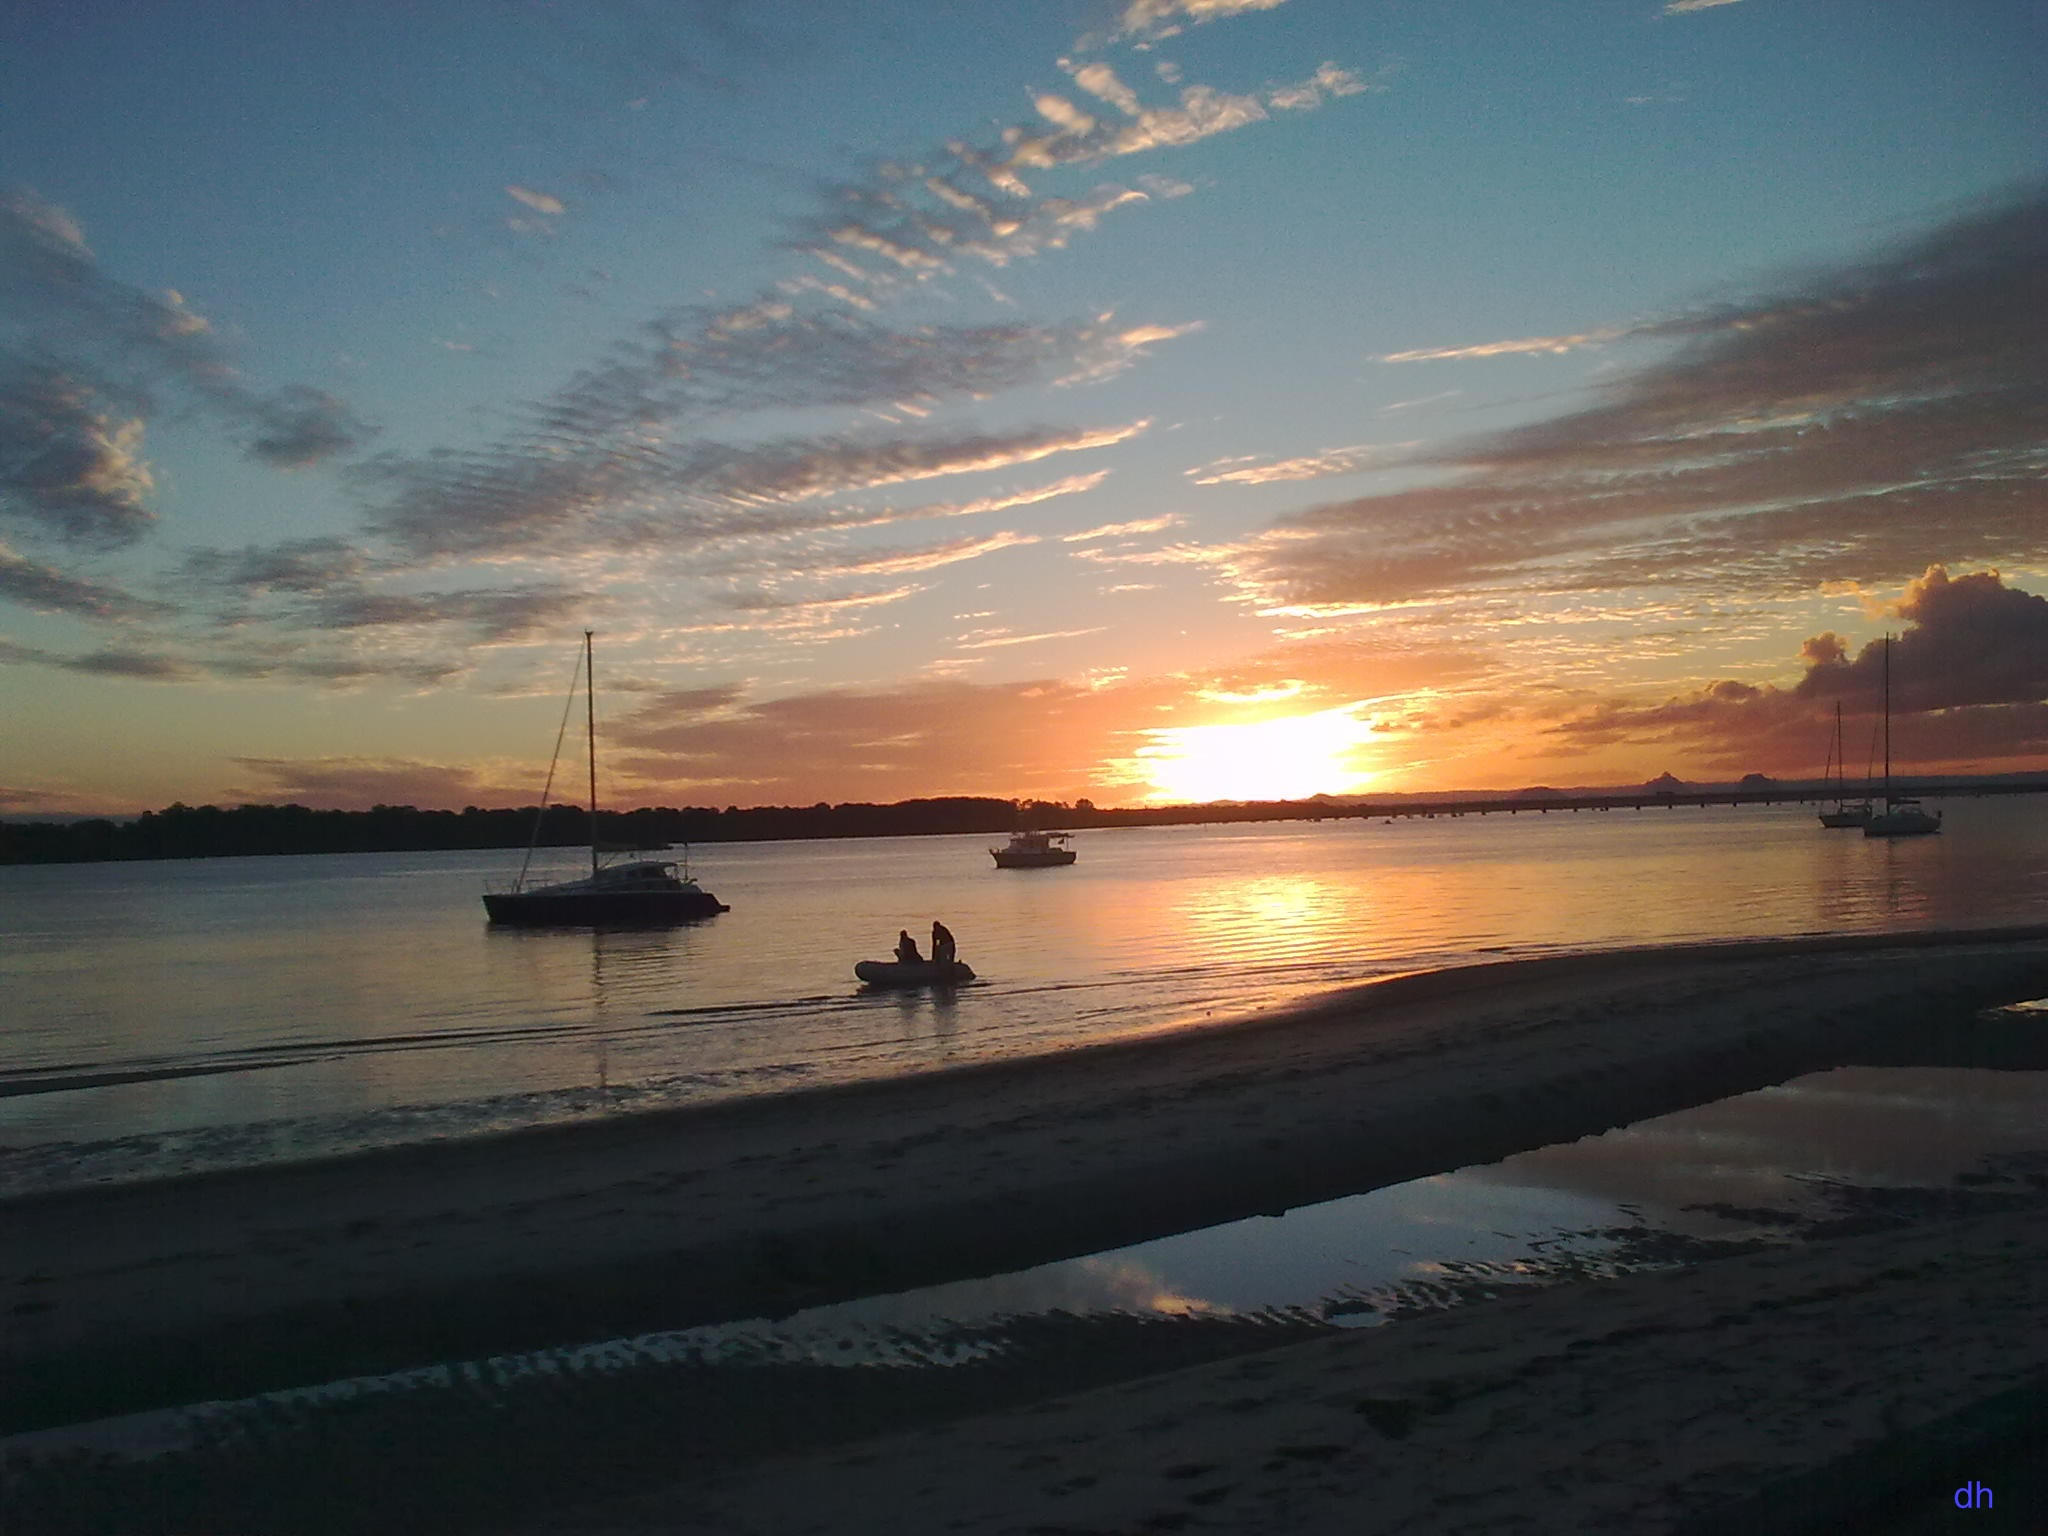 Sunset at Bribie Island, South East Queensland, Australia